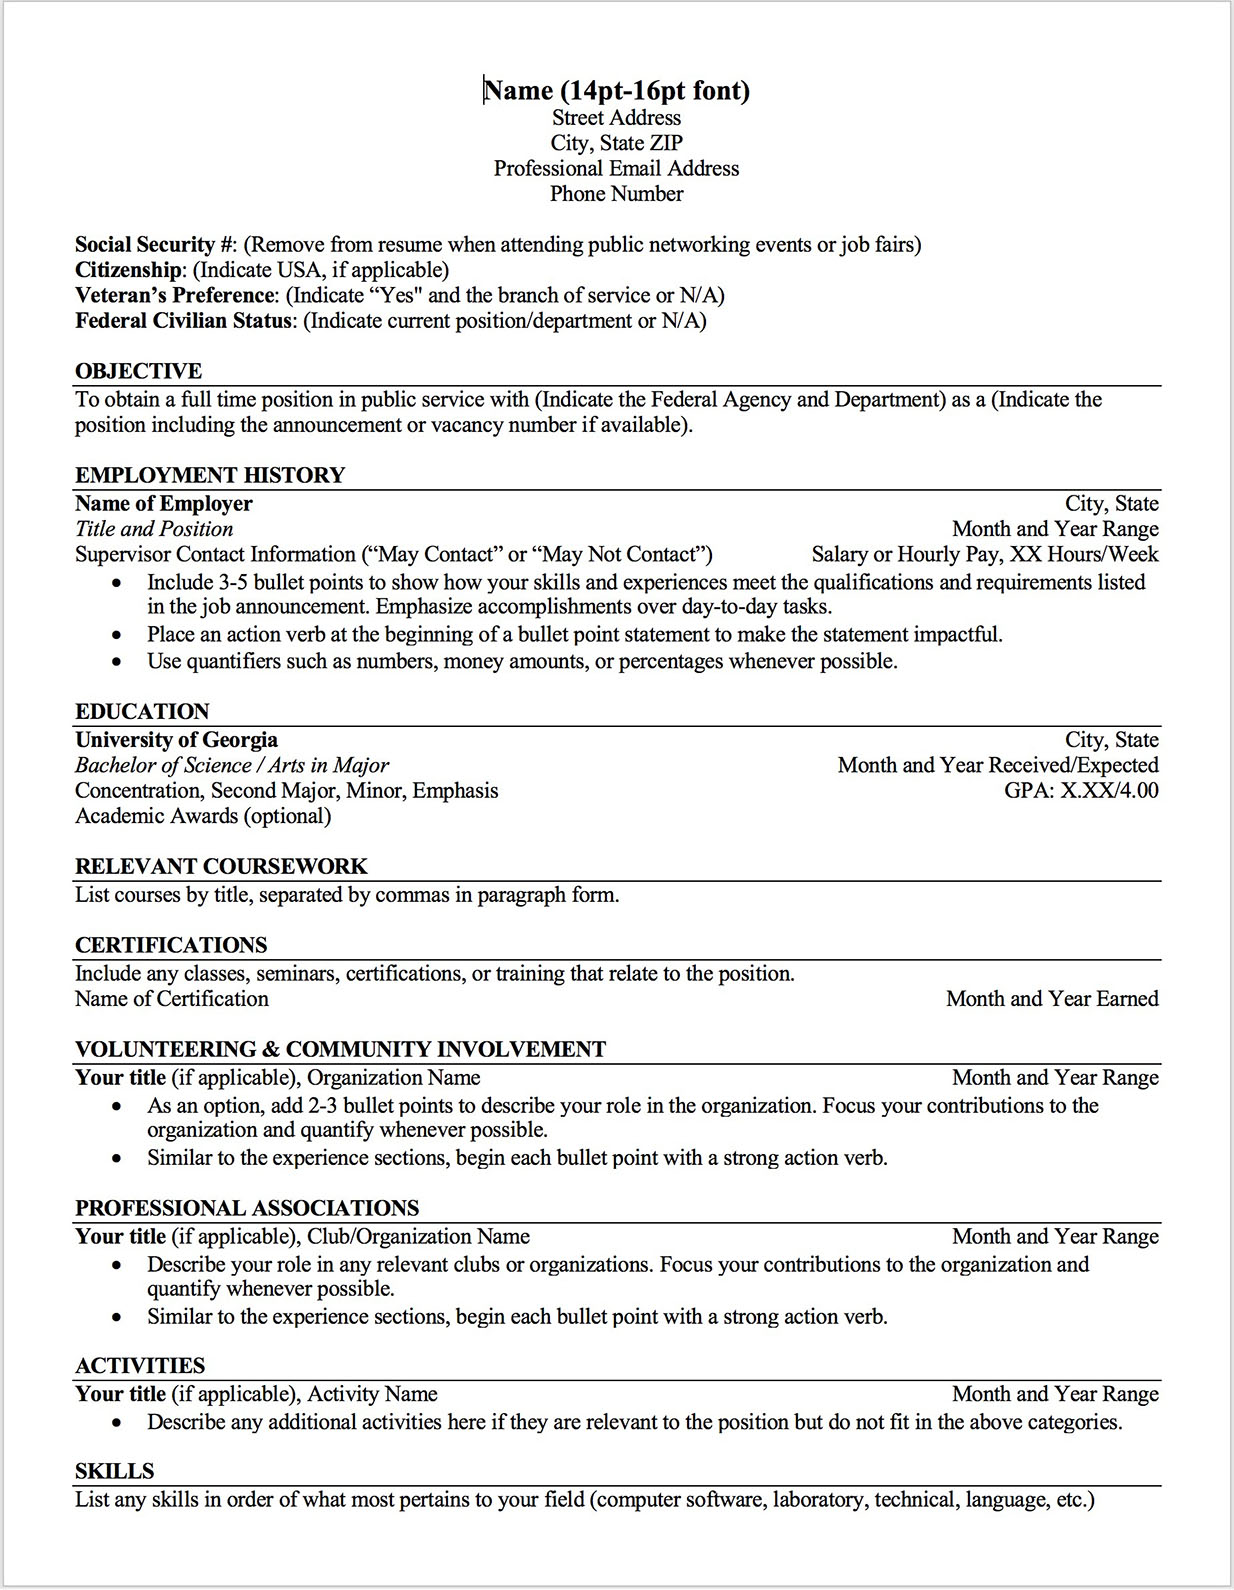 Additional Coursework On Resume Federal